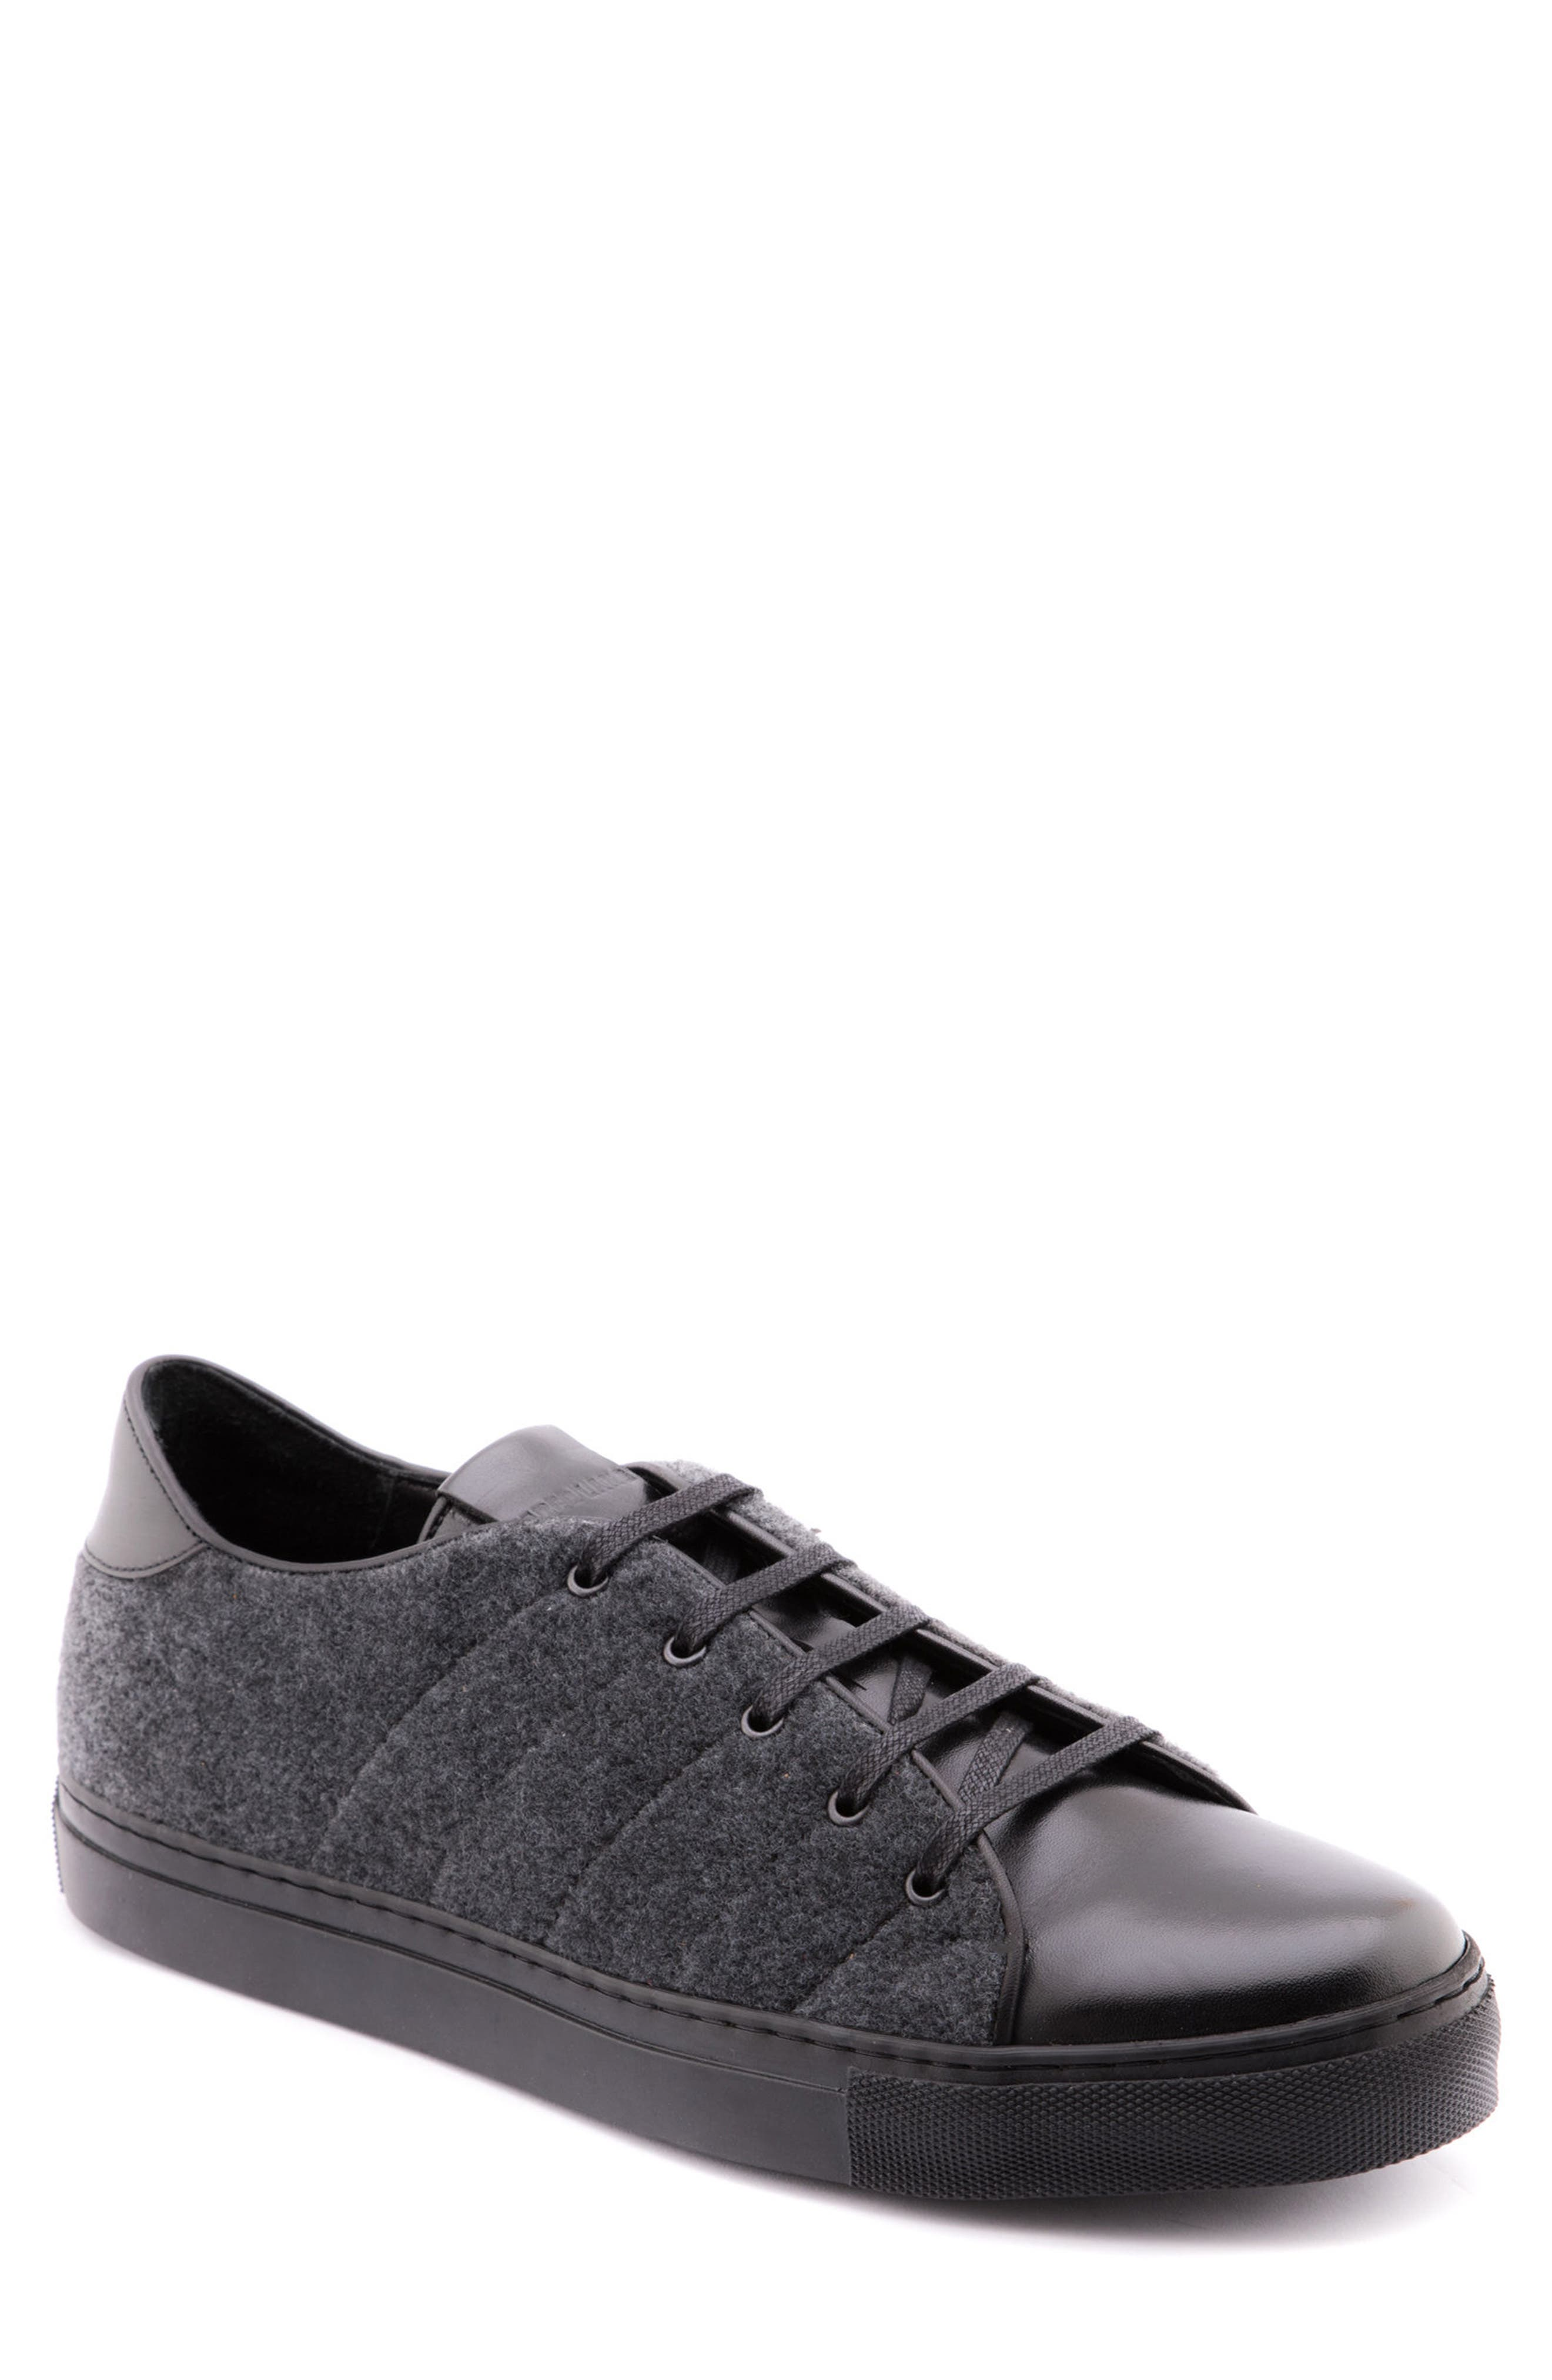 Travis Leather Sneaker,                         Main,                         color, GREY